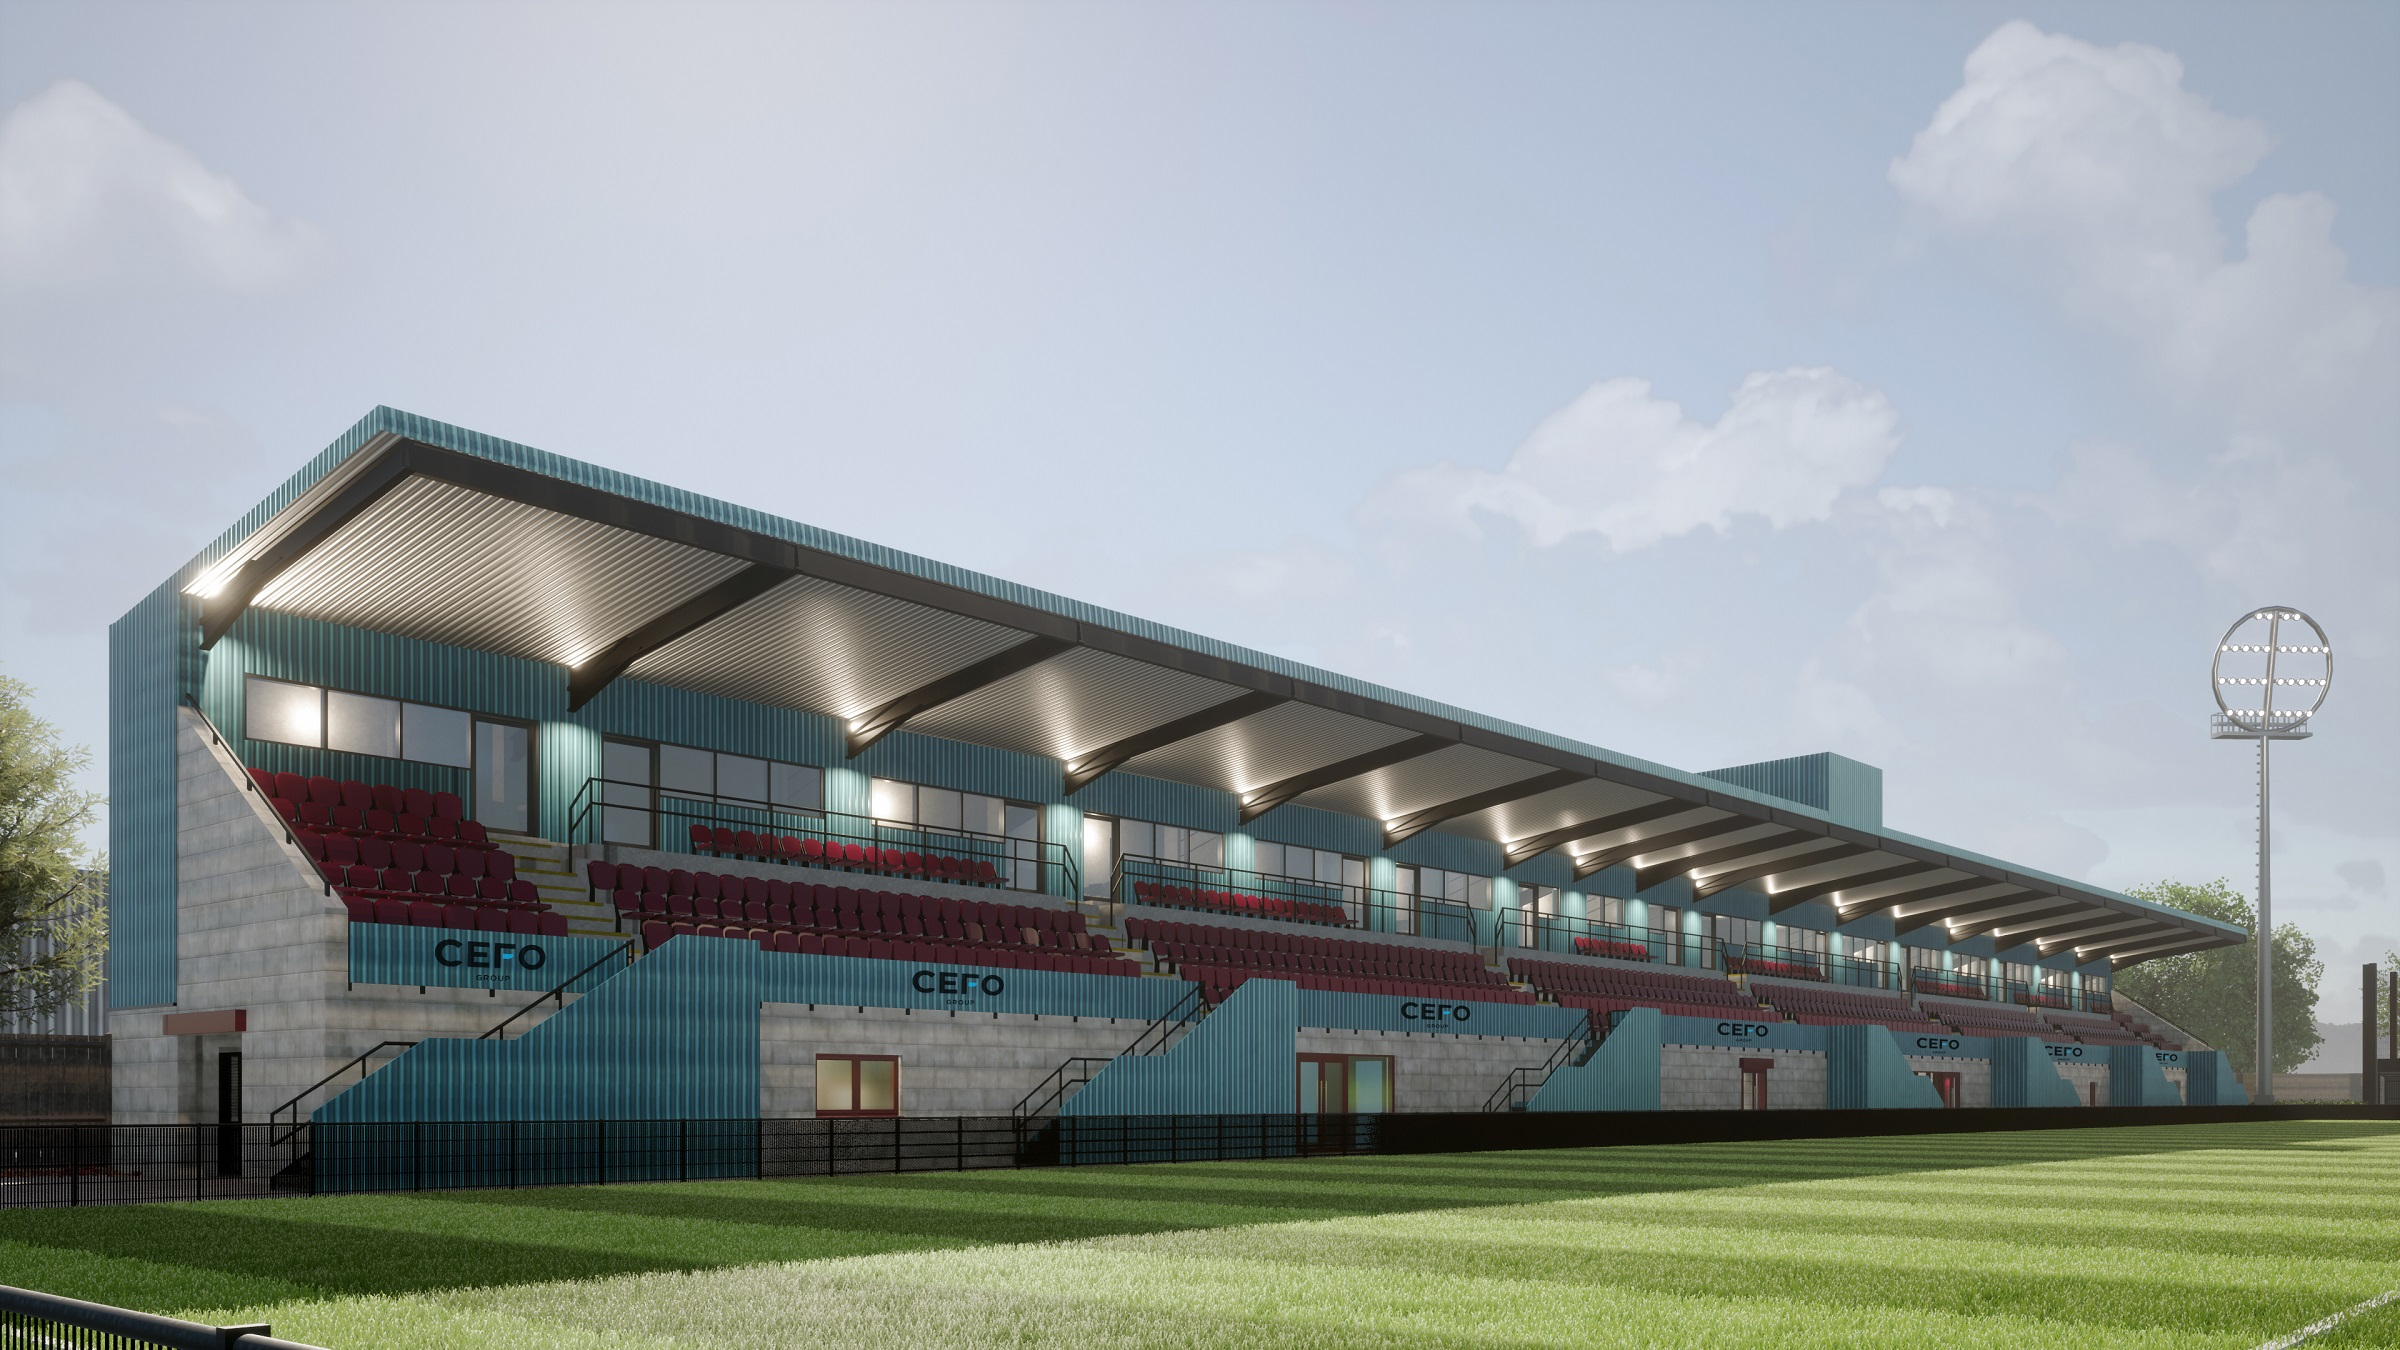 CEFO Group become sponsors of new main stand